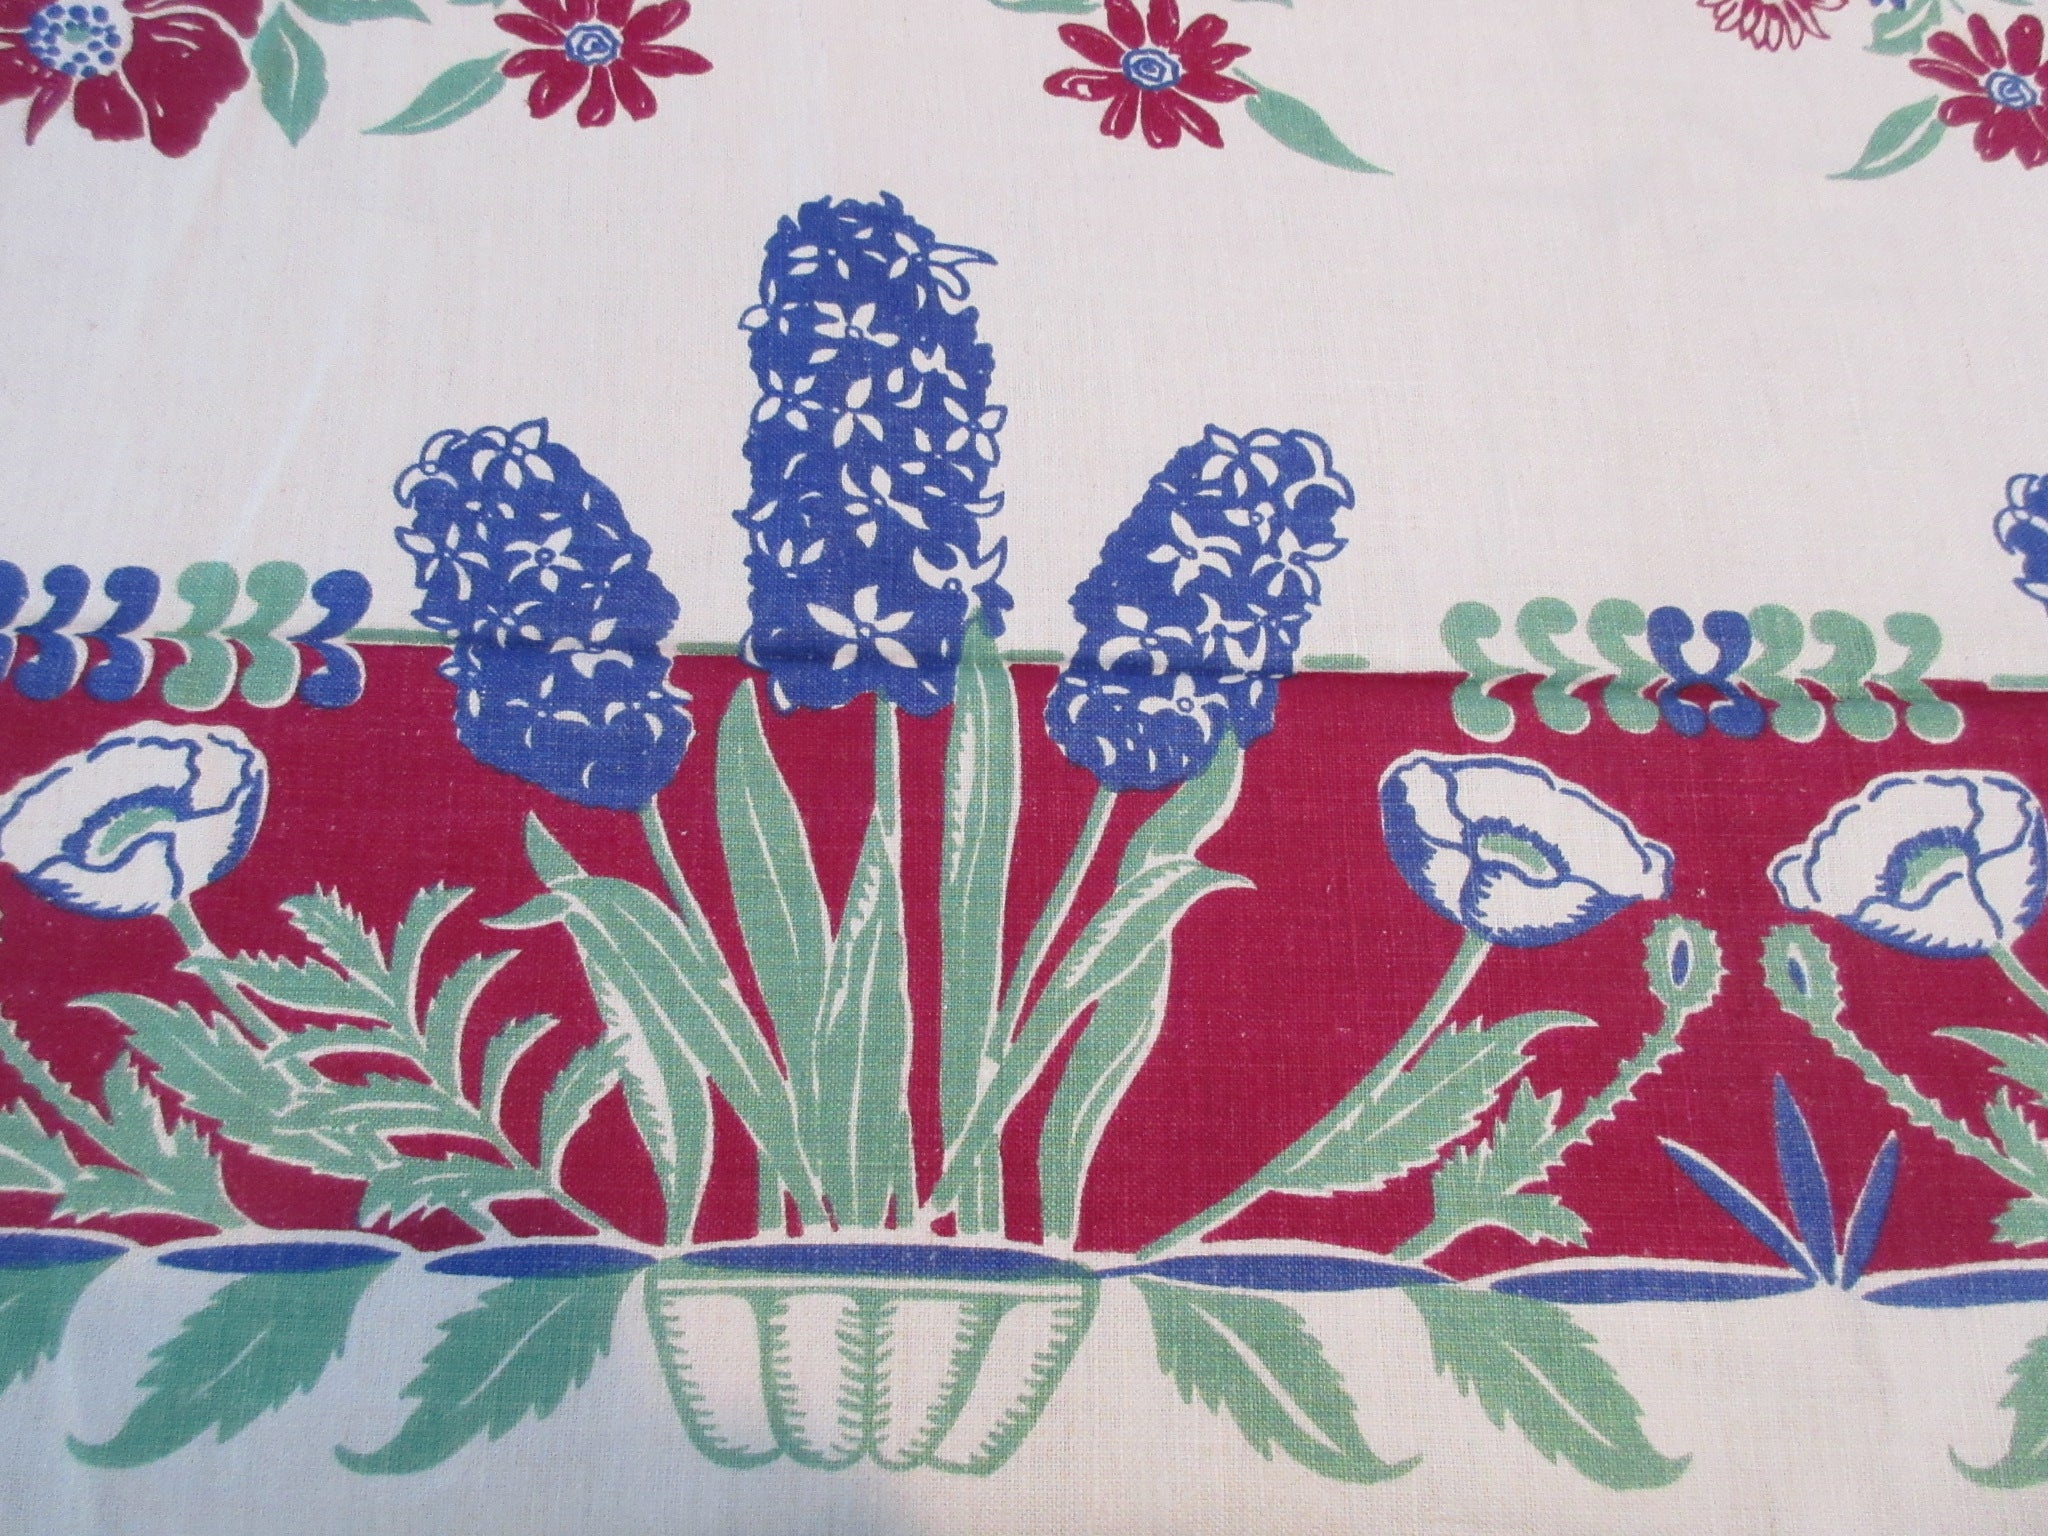 Stunning Blue Hyacinths Poppies on Magenta Linen Floral Vintage Printed Tablecloth (70 X 52)